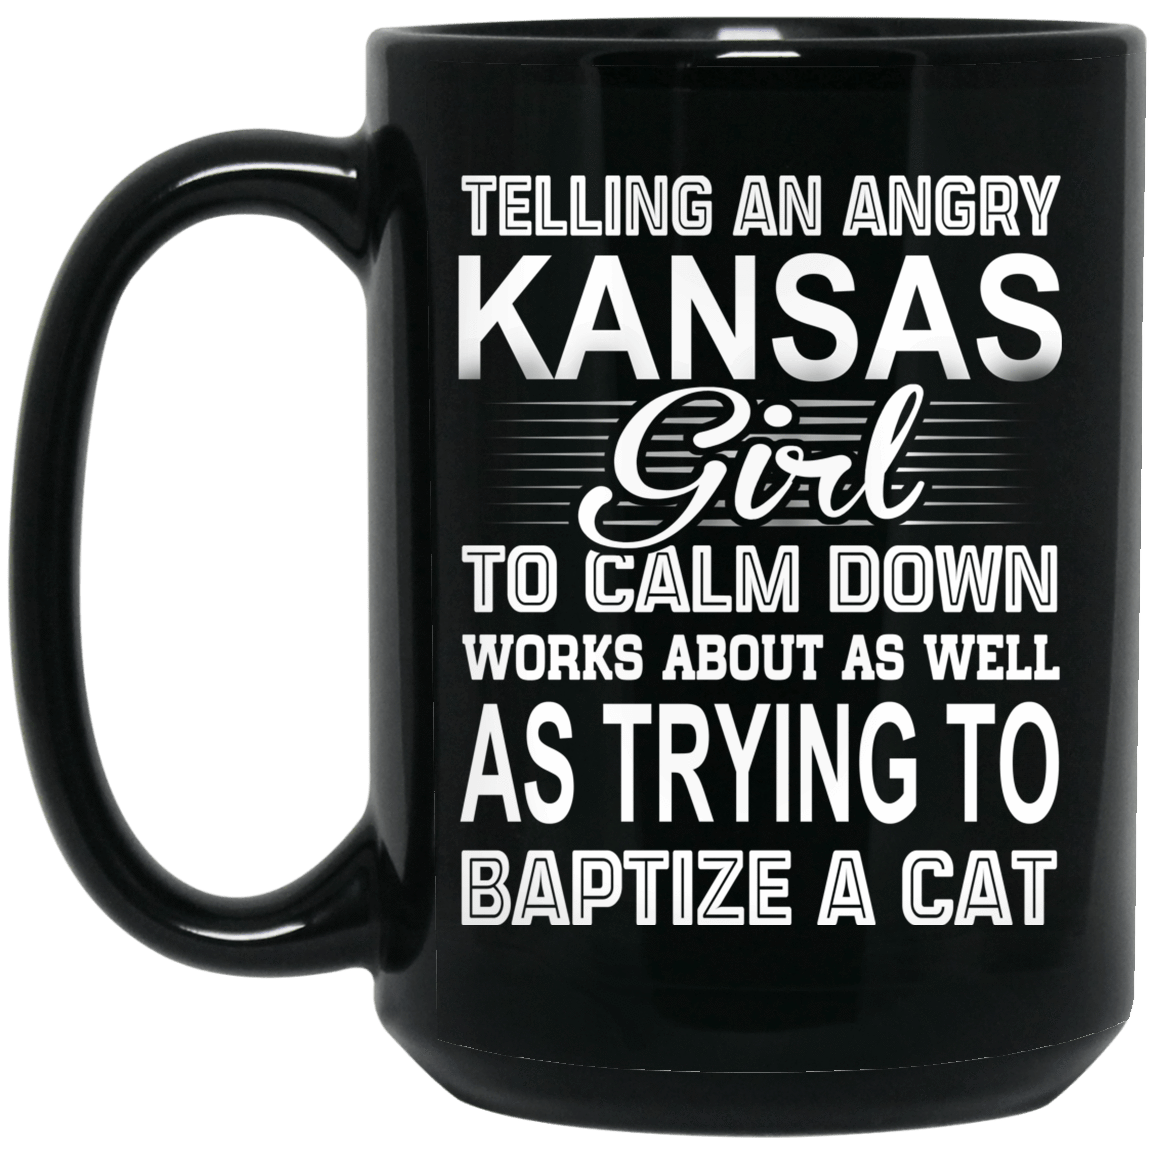 Telling An Angry Kansas Girl To Calm Down Works About As Well As Trying To Baptize A Cat Mug 1066-10182-76151644-49311 - Tee Ript